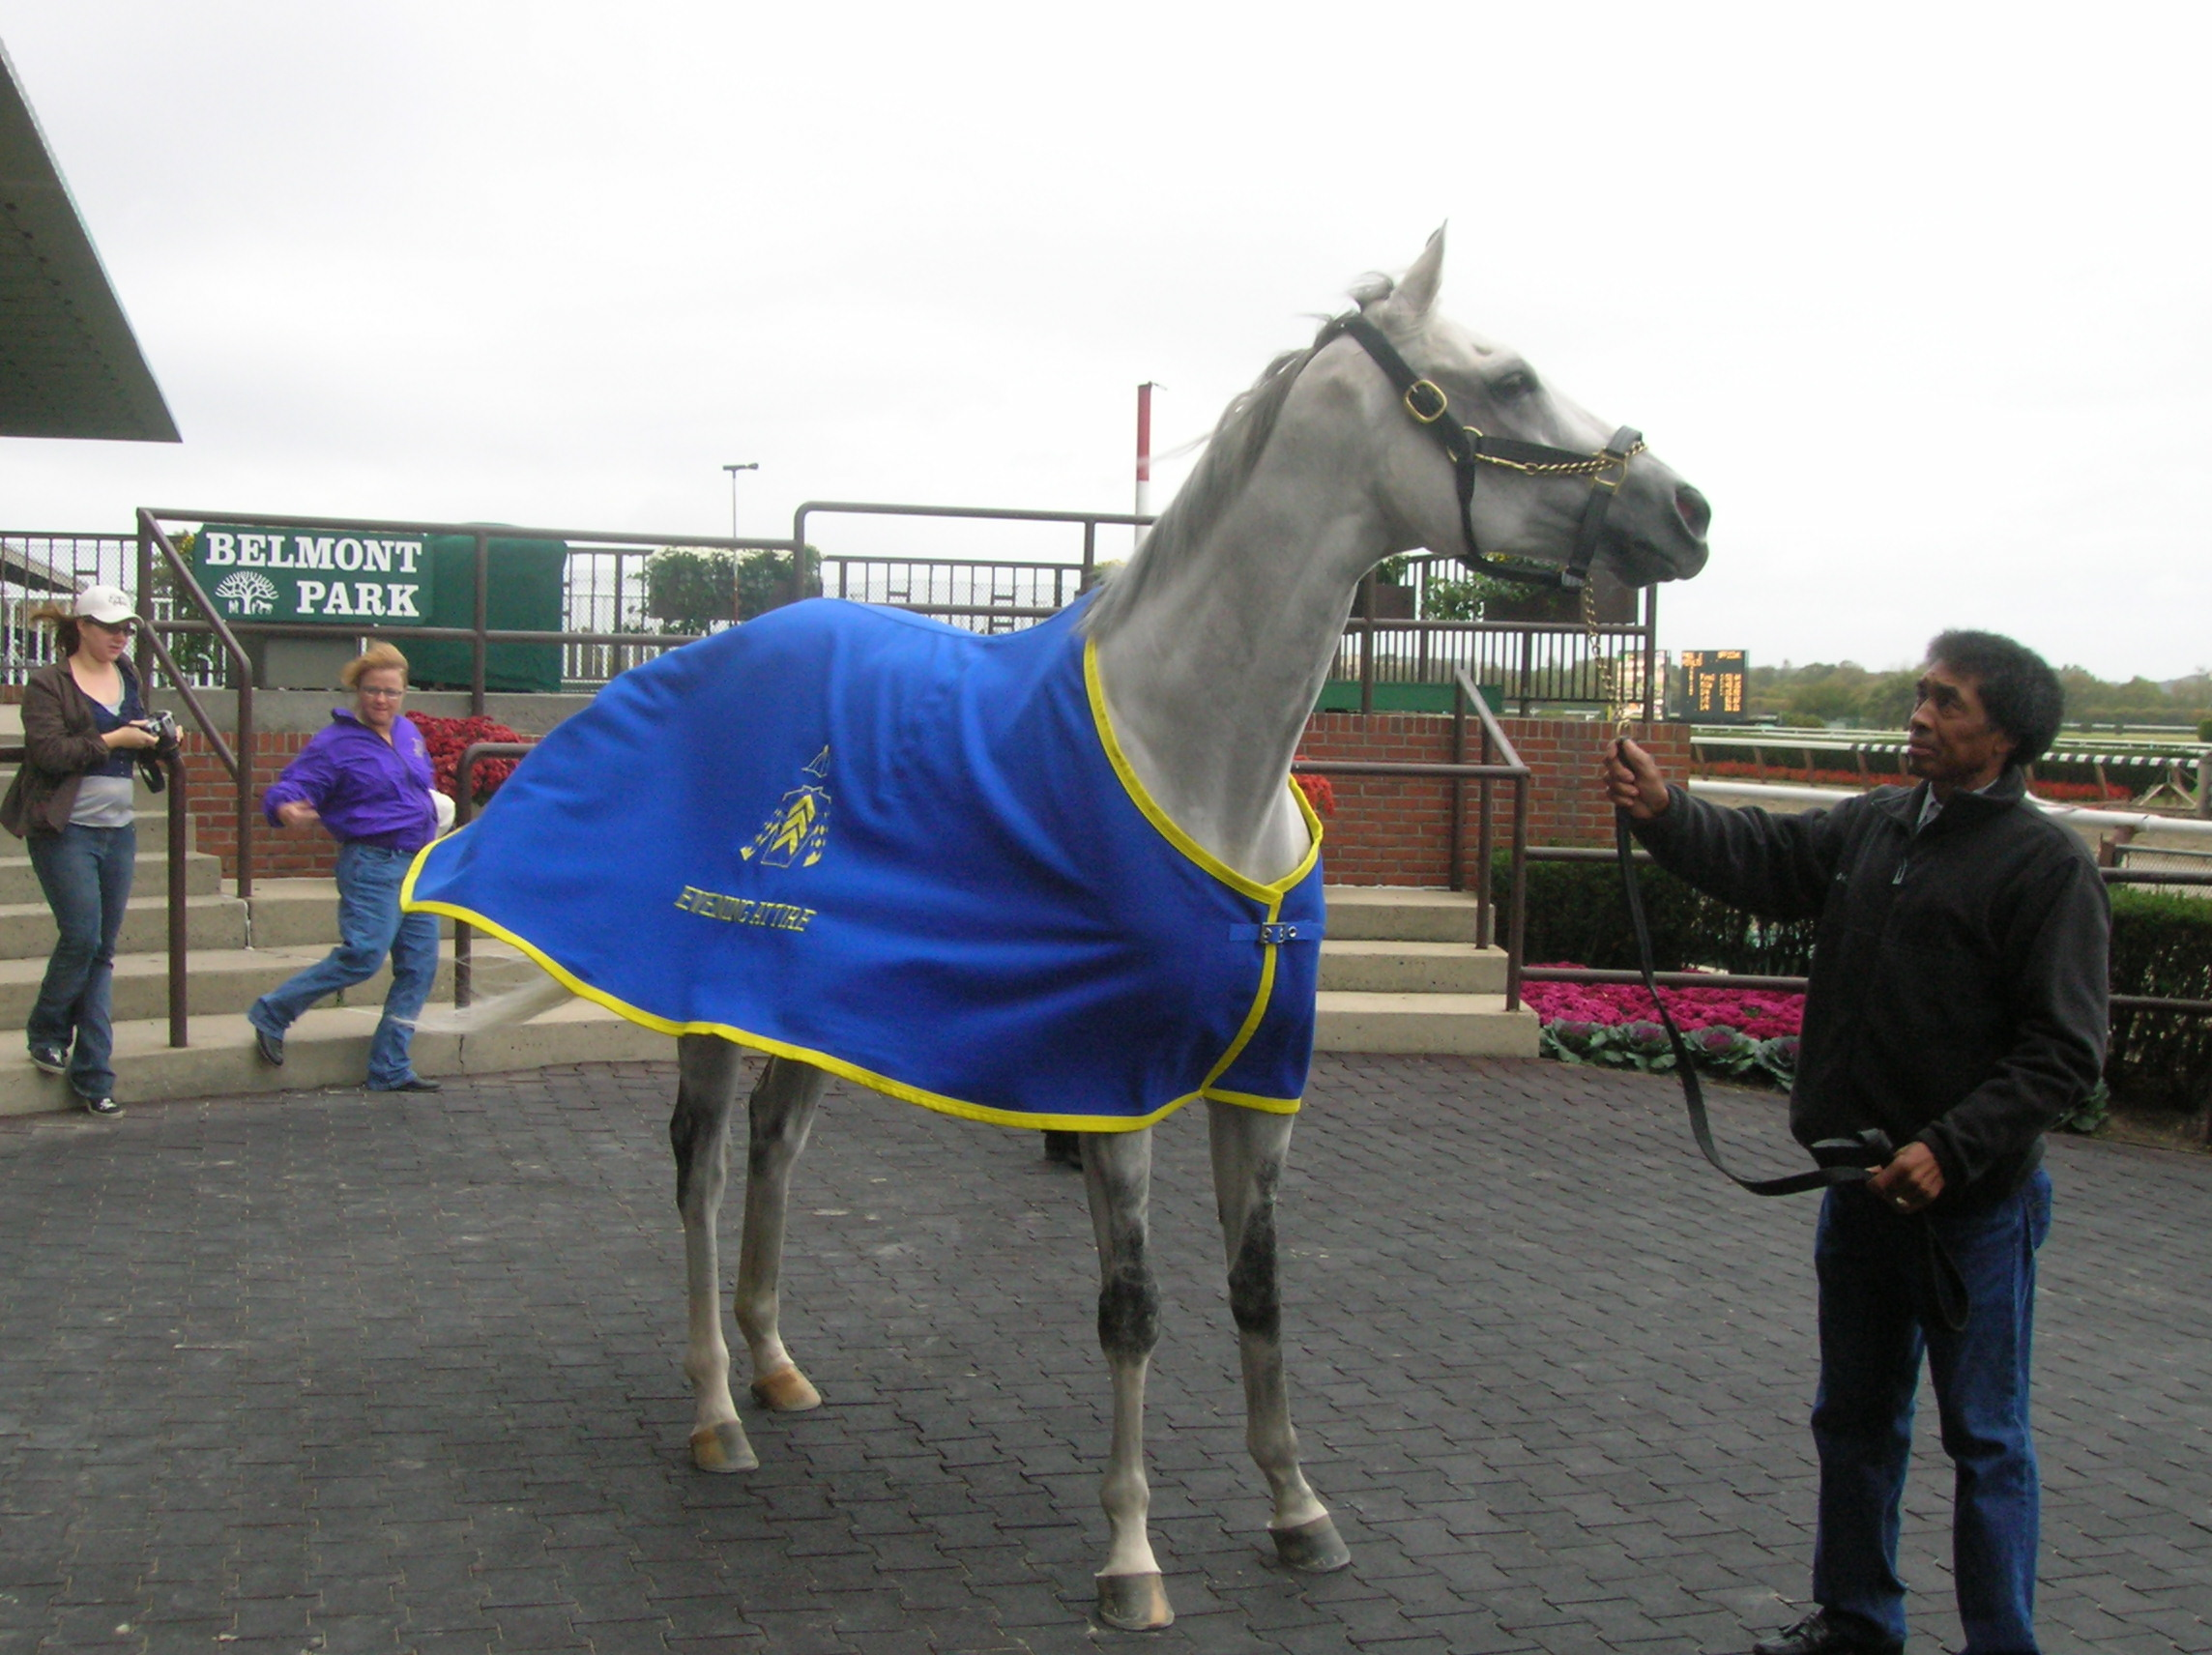 Evening Attire on the day of his official retirement at Belmont Park, September 2008. Photo credit Teresa Genaro